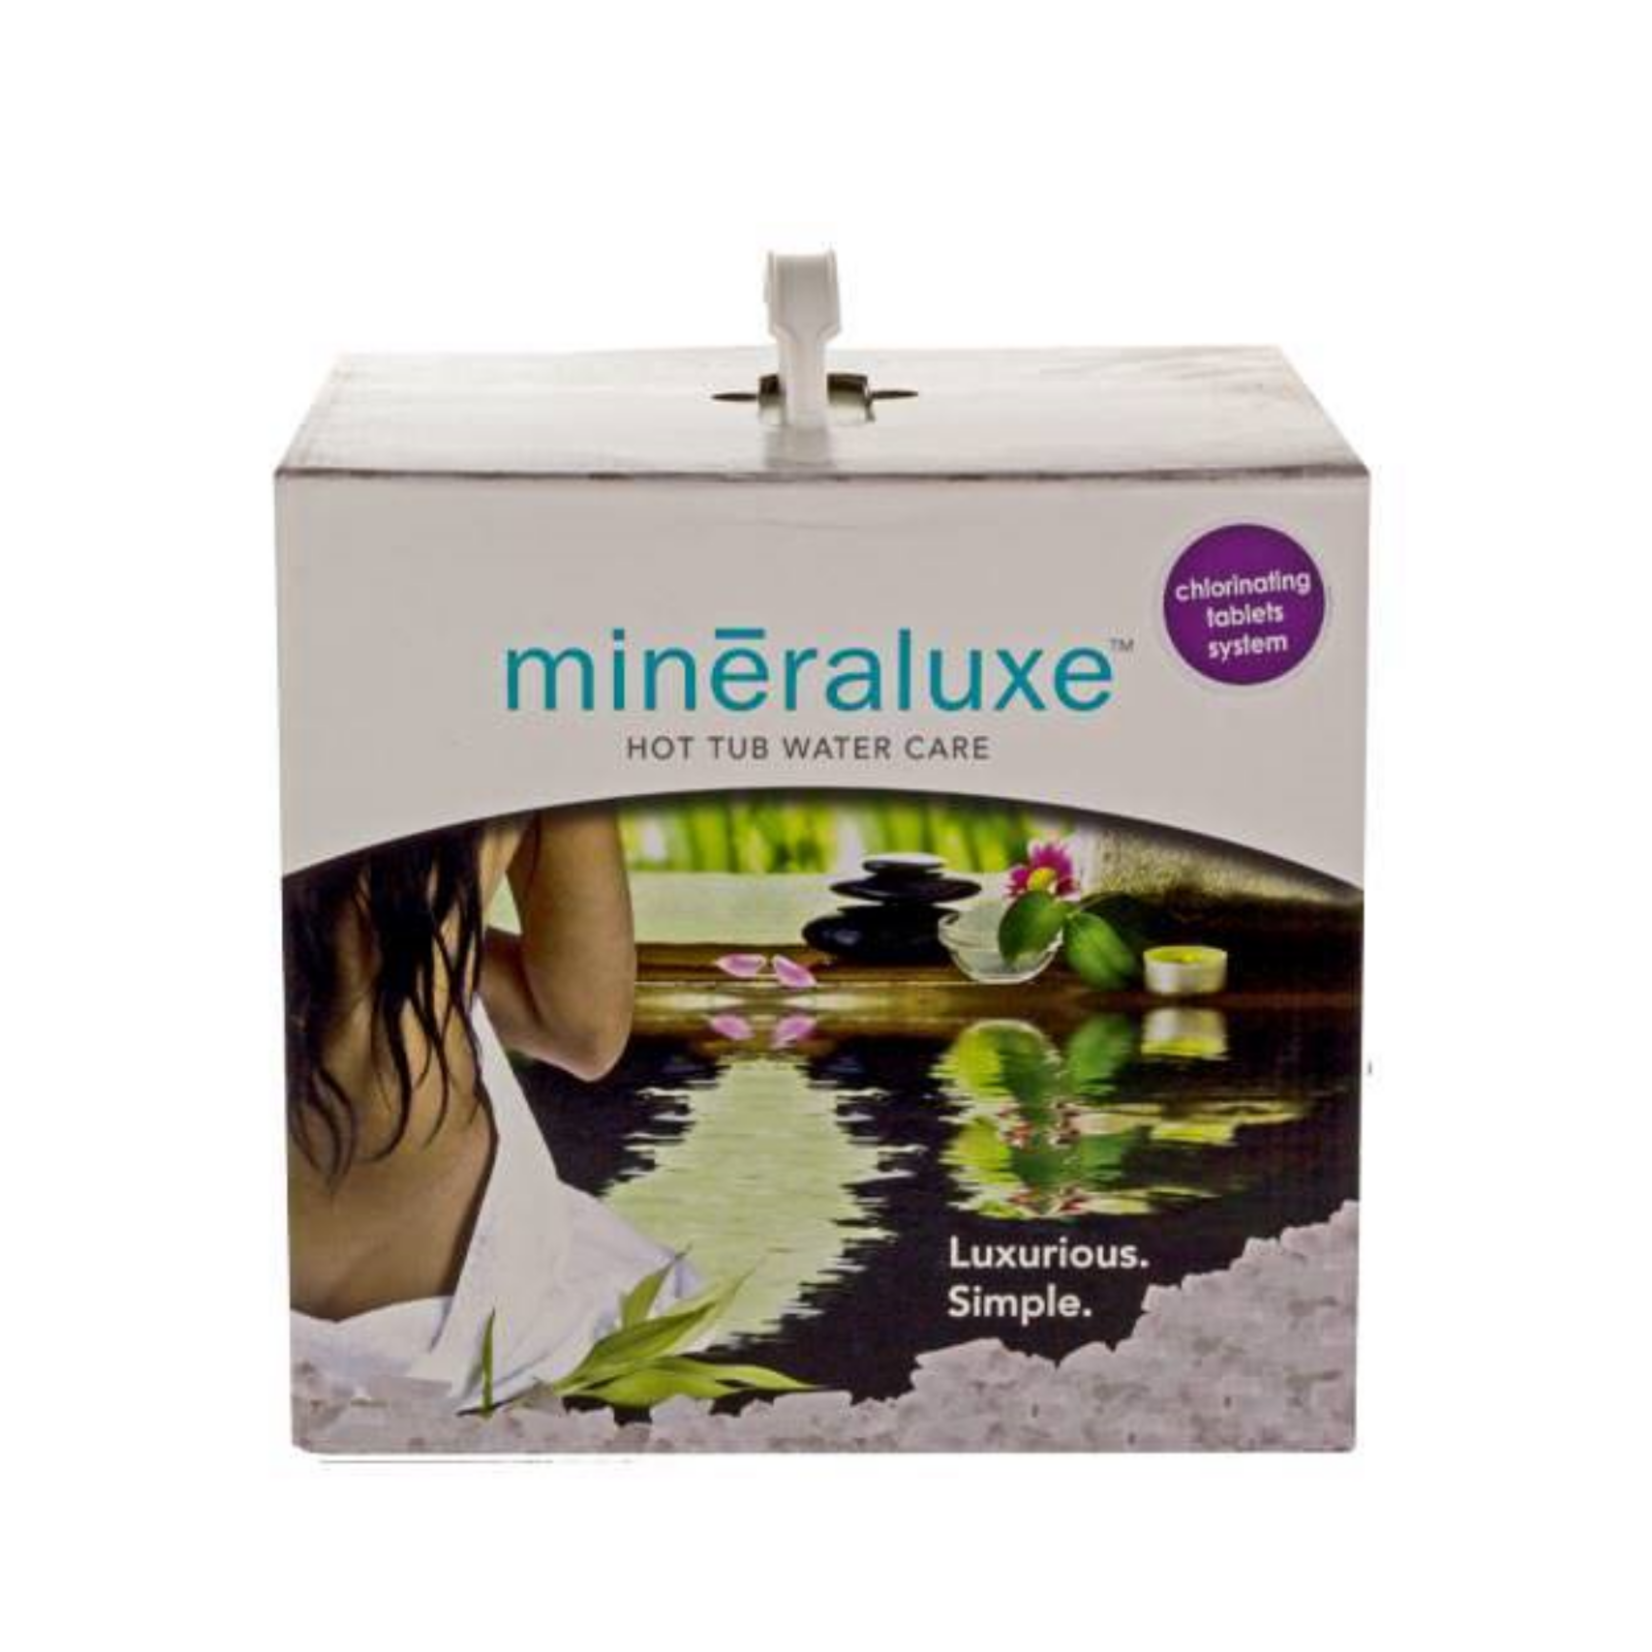 Mineraluxe Chlorine System - 3 Month Kit